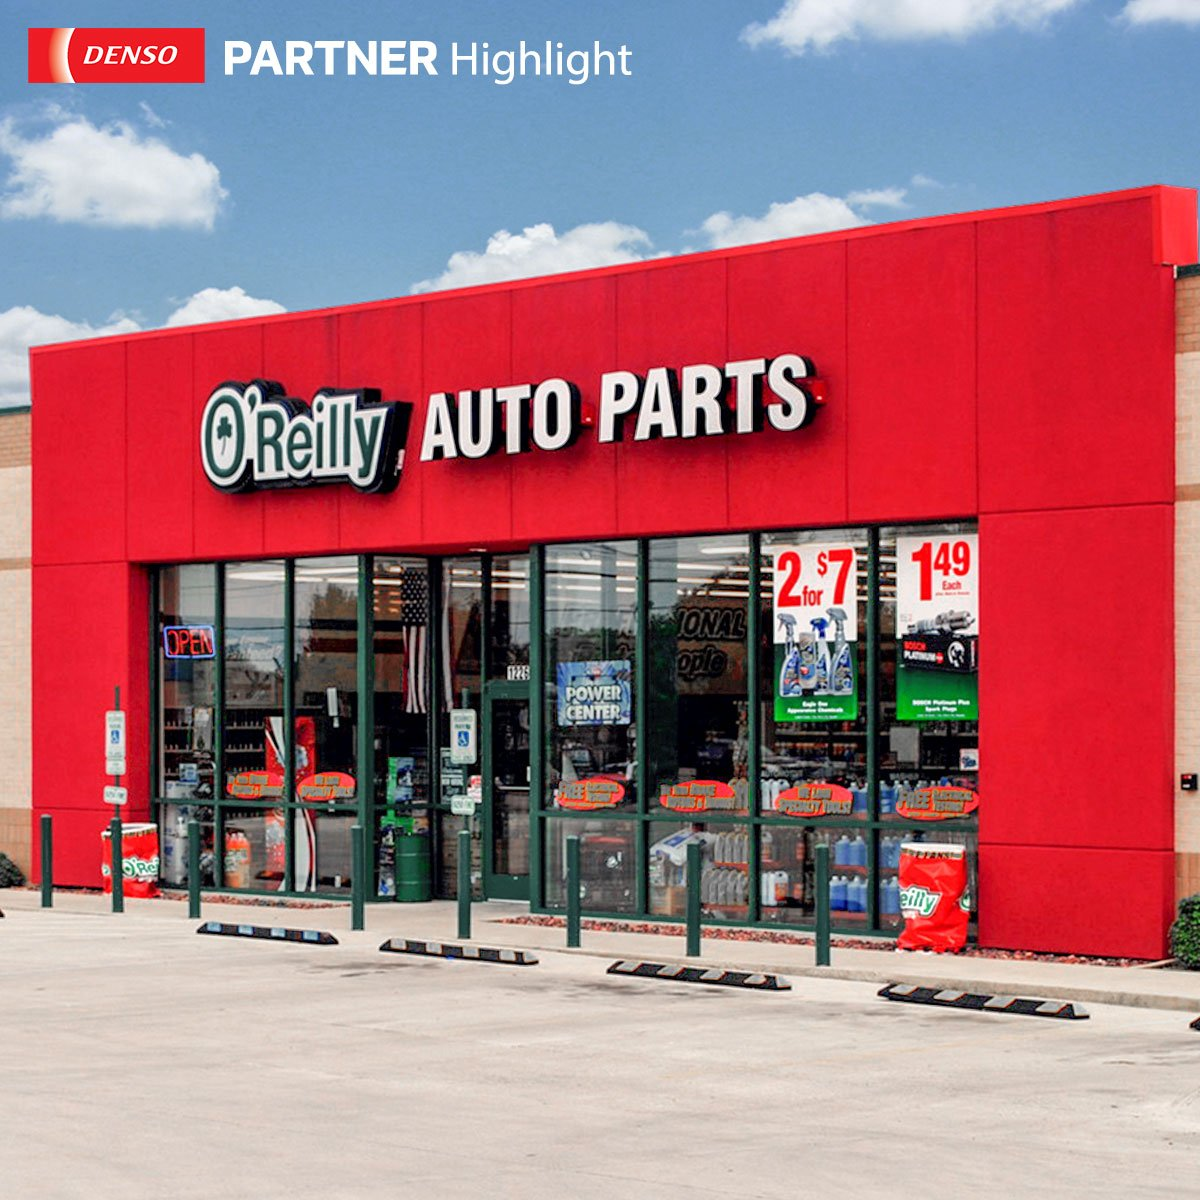 Nearest Auto Parts >> Denso Auto Parts On Twitter Partner Highlight Denso Is